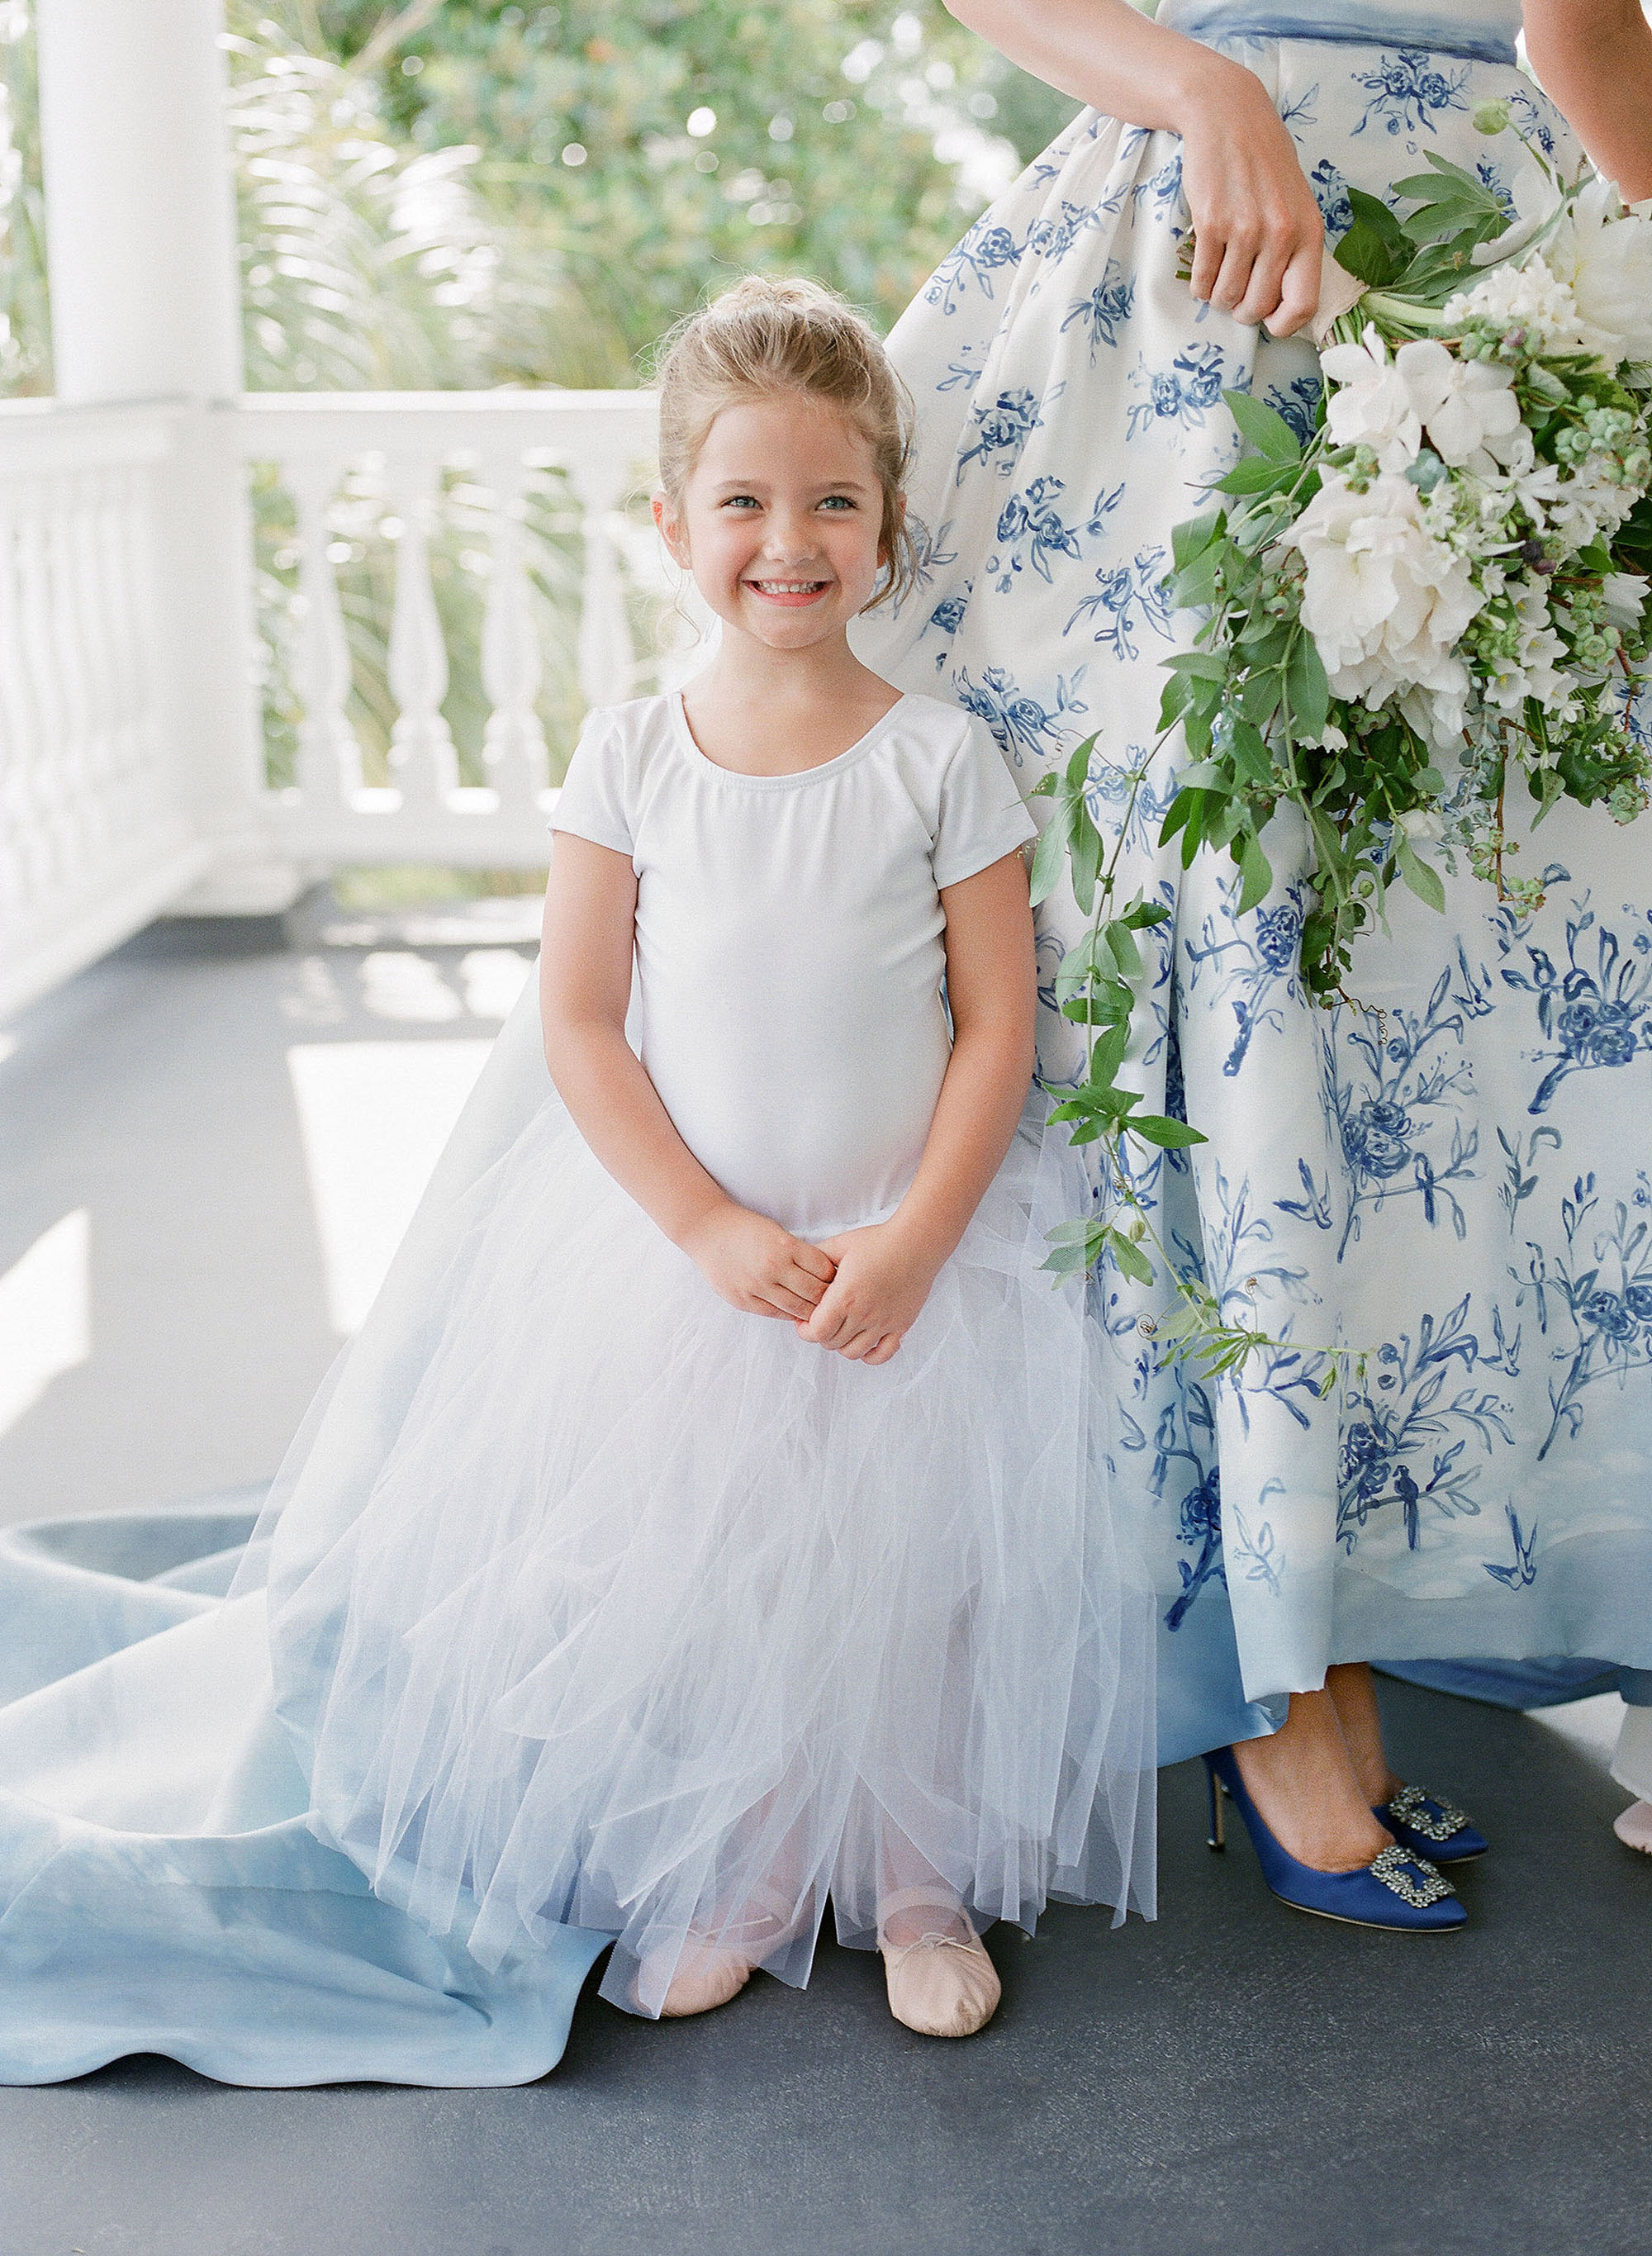 Five Points to Consider When Choosing a Flower Girl for Your Wedding